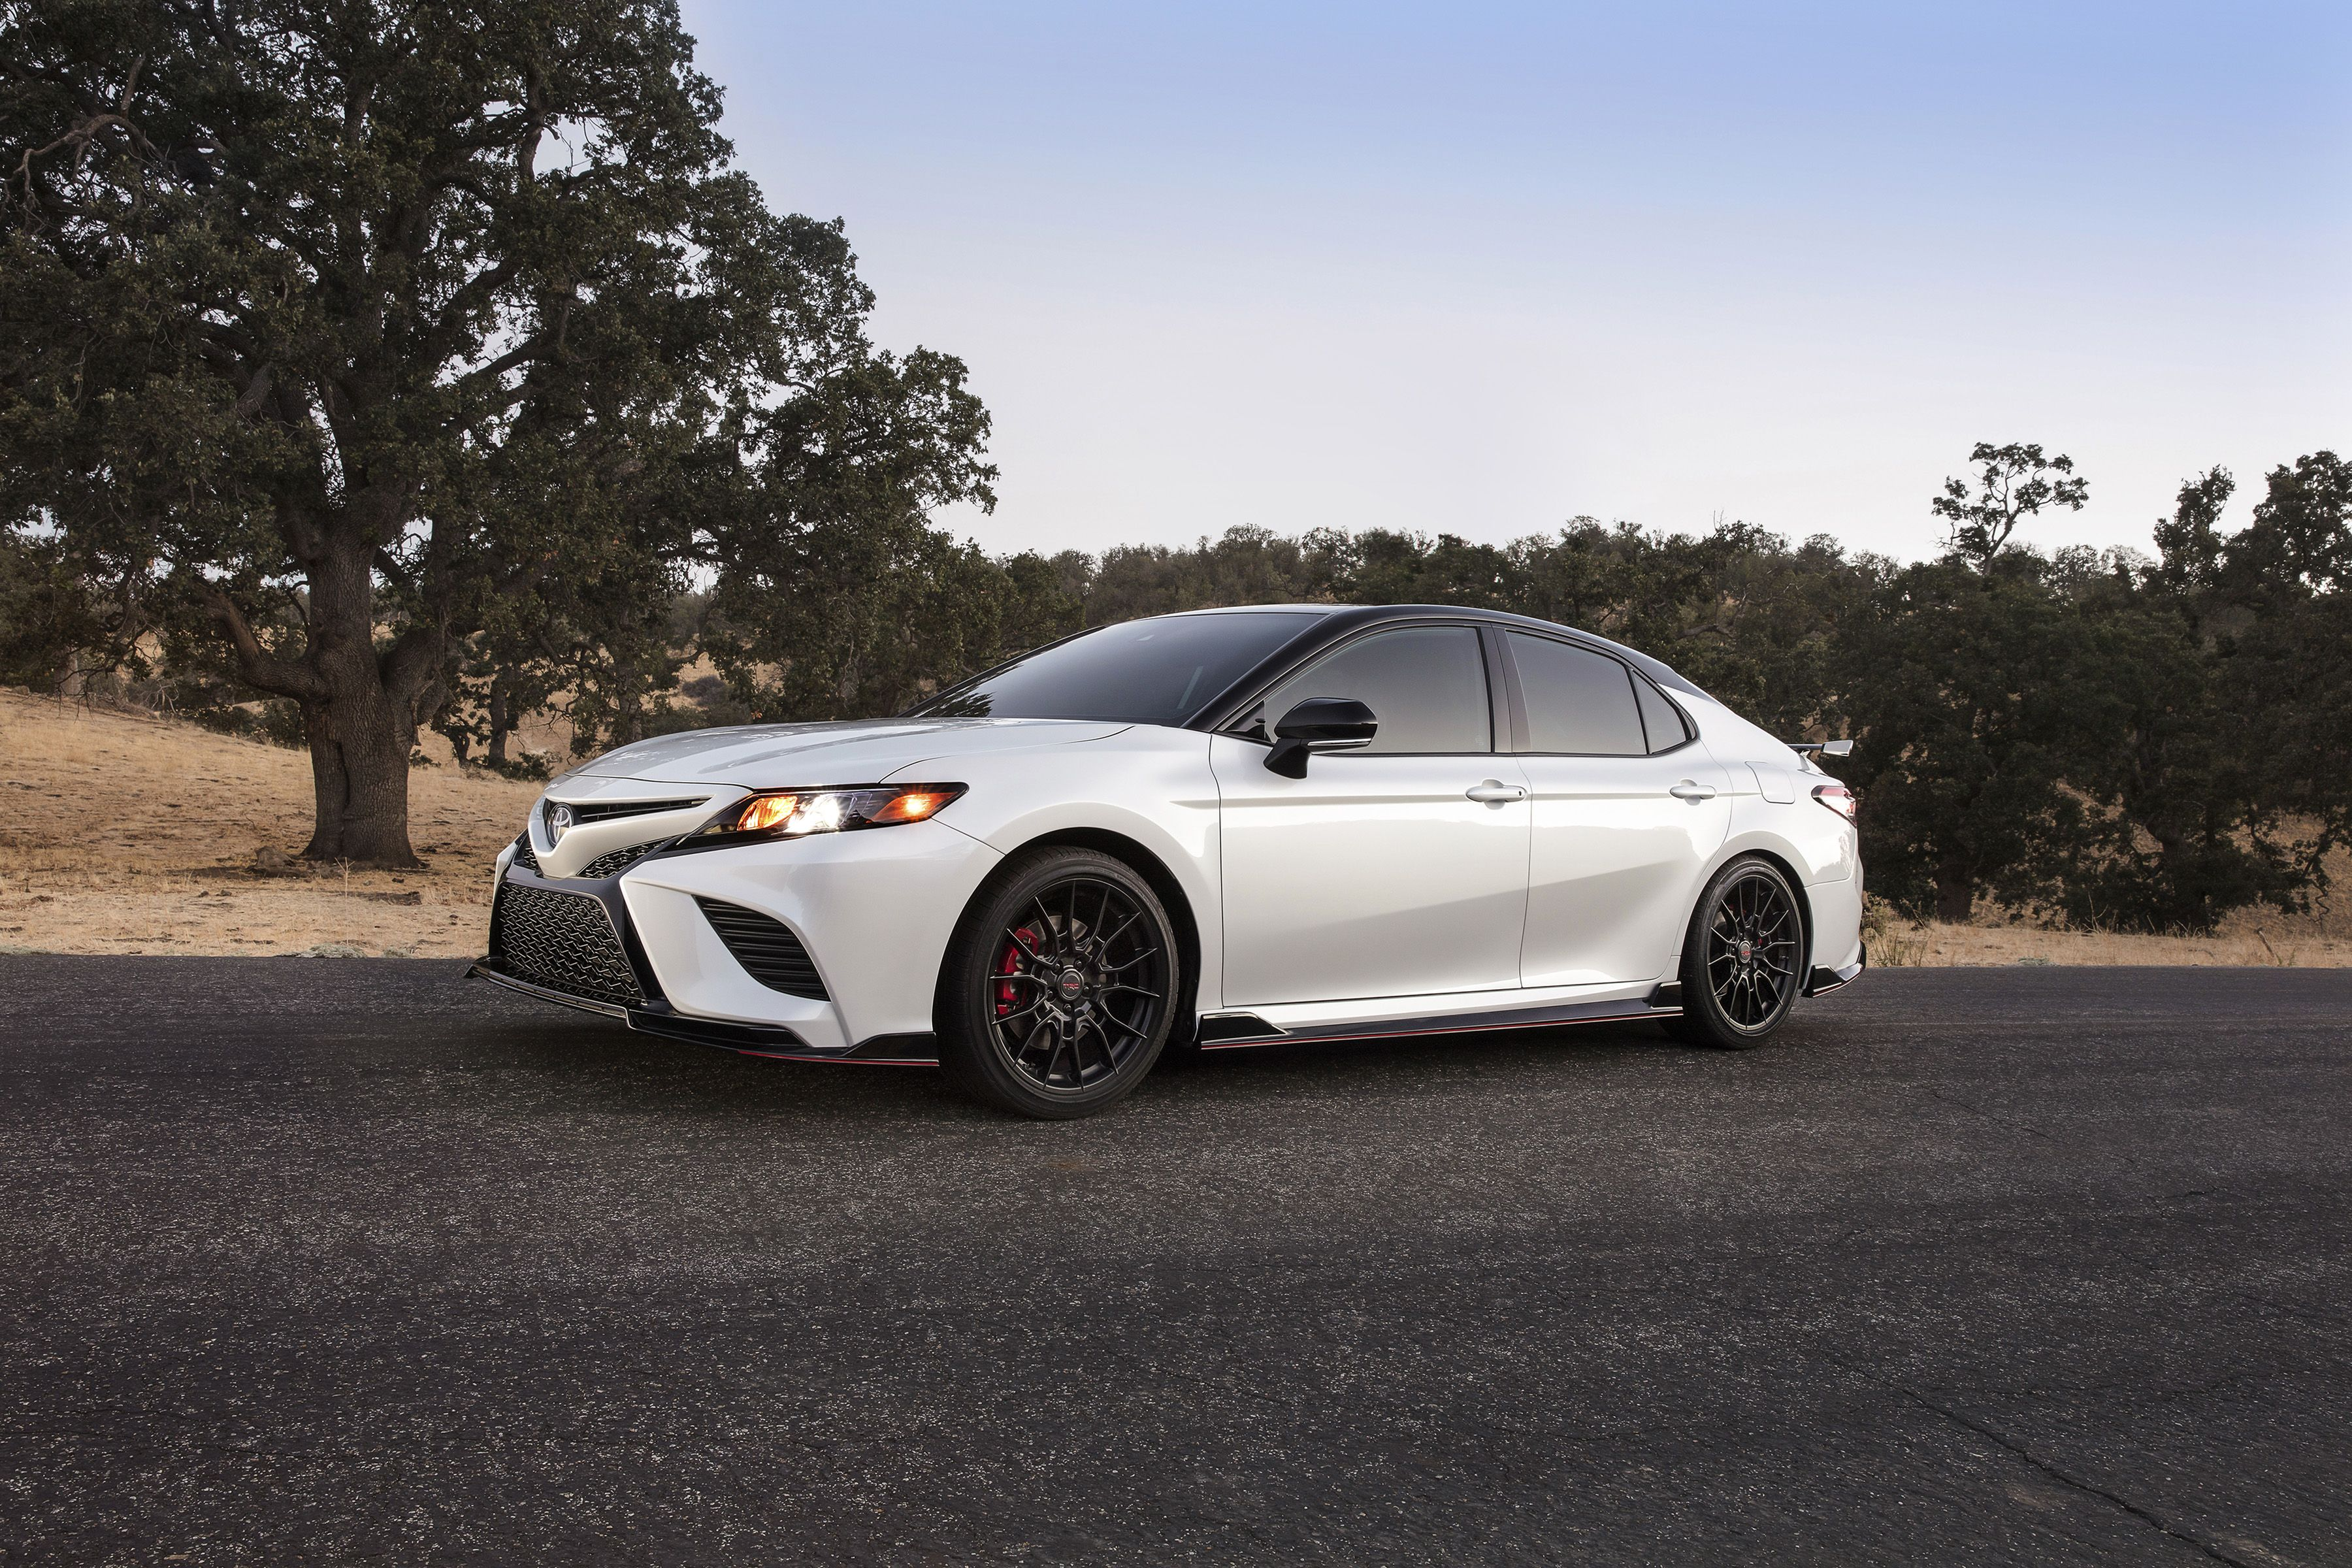 2020 toyota camry trd has red seatbelts and the chassis mods to back them up claims track ready vwvortex com 2020 toyota camry trd has red seatbelts